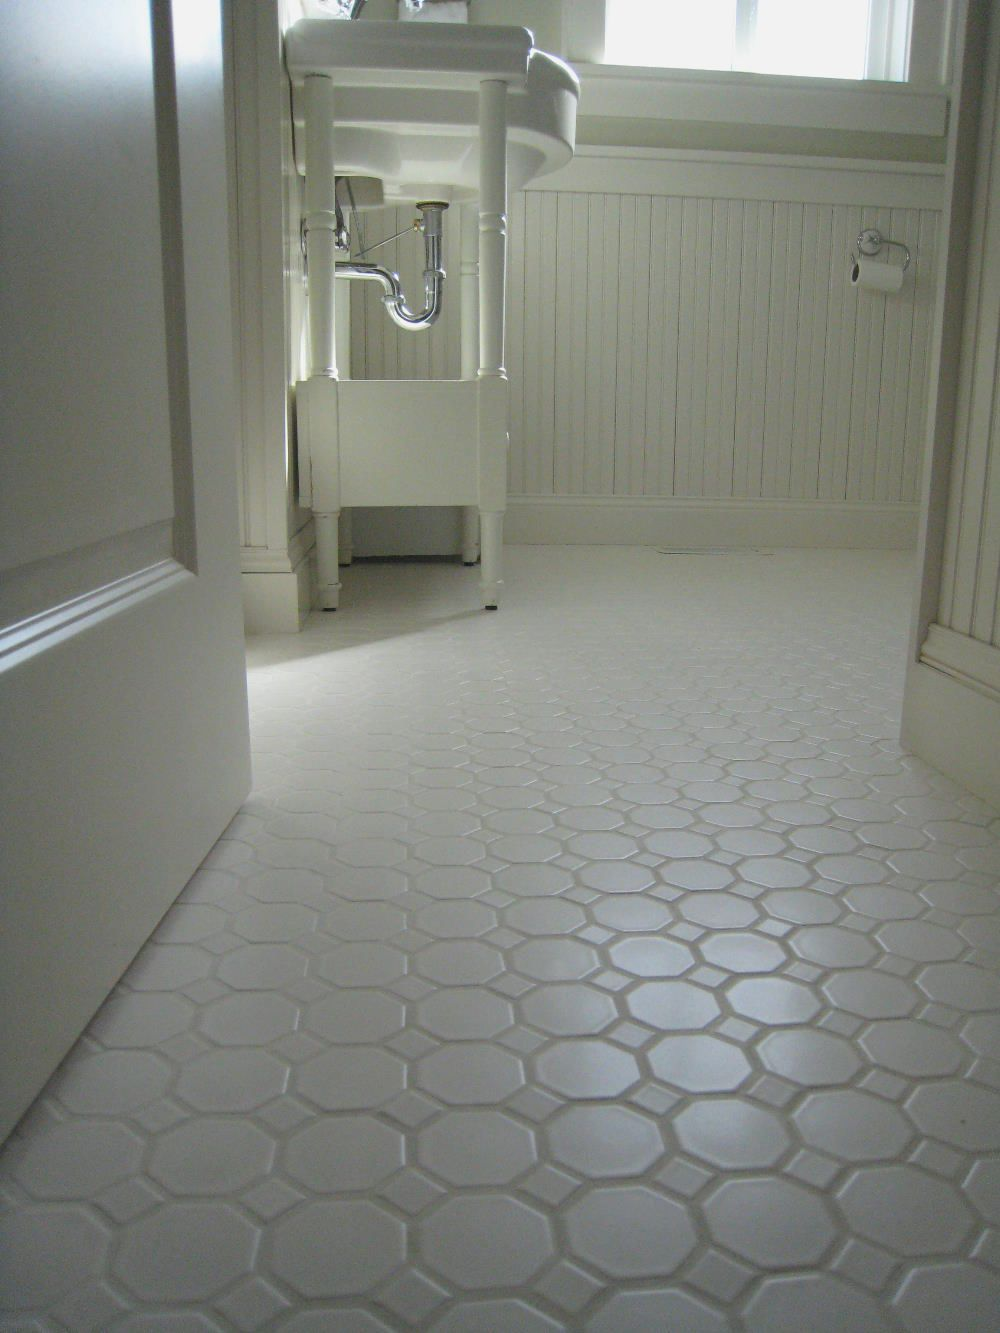 Non slip bathroom floor tiles more picture non slip bathroom floor non slip bathroom floor tiles more picture non slip bathroom floor tiles please visit doublecrazyfo Image collections